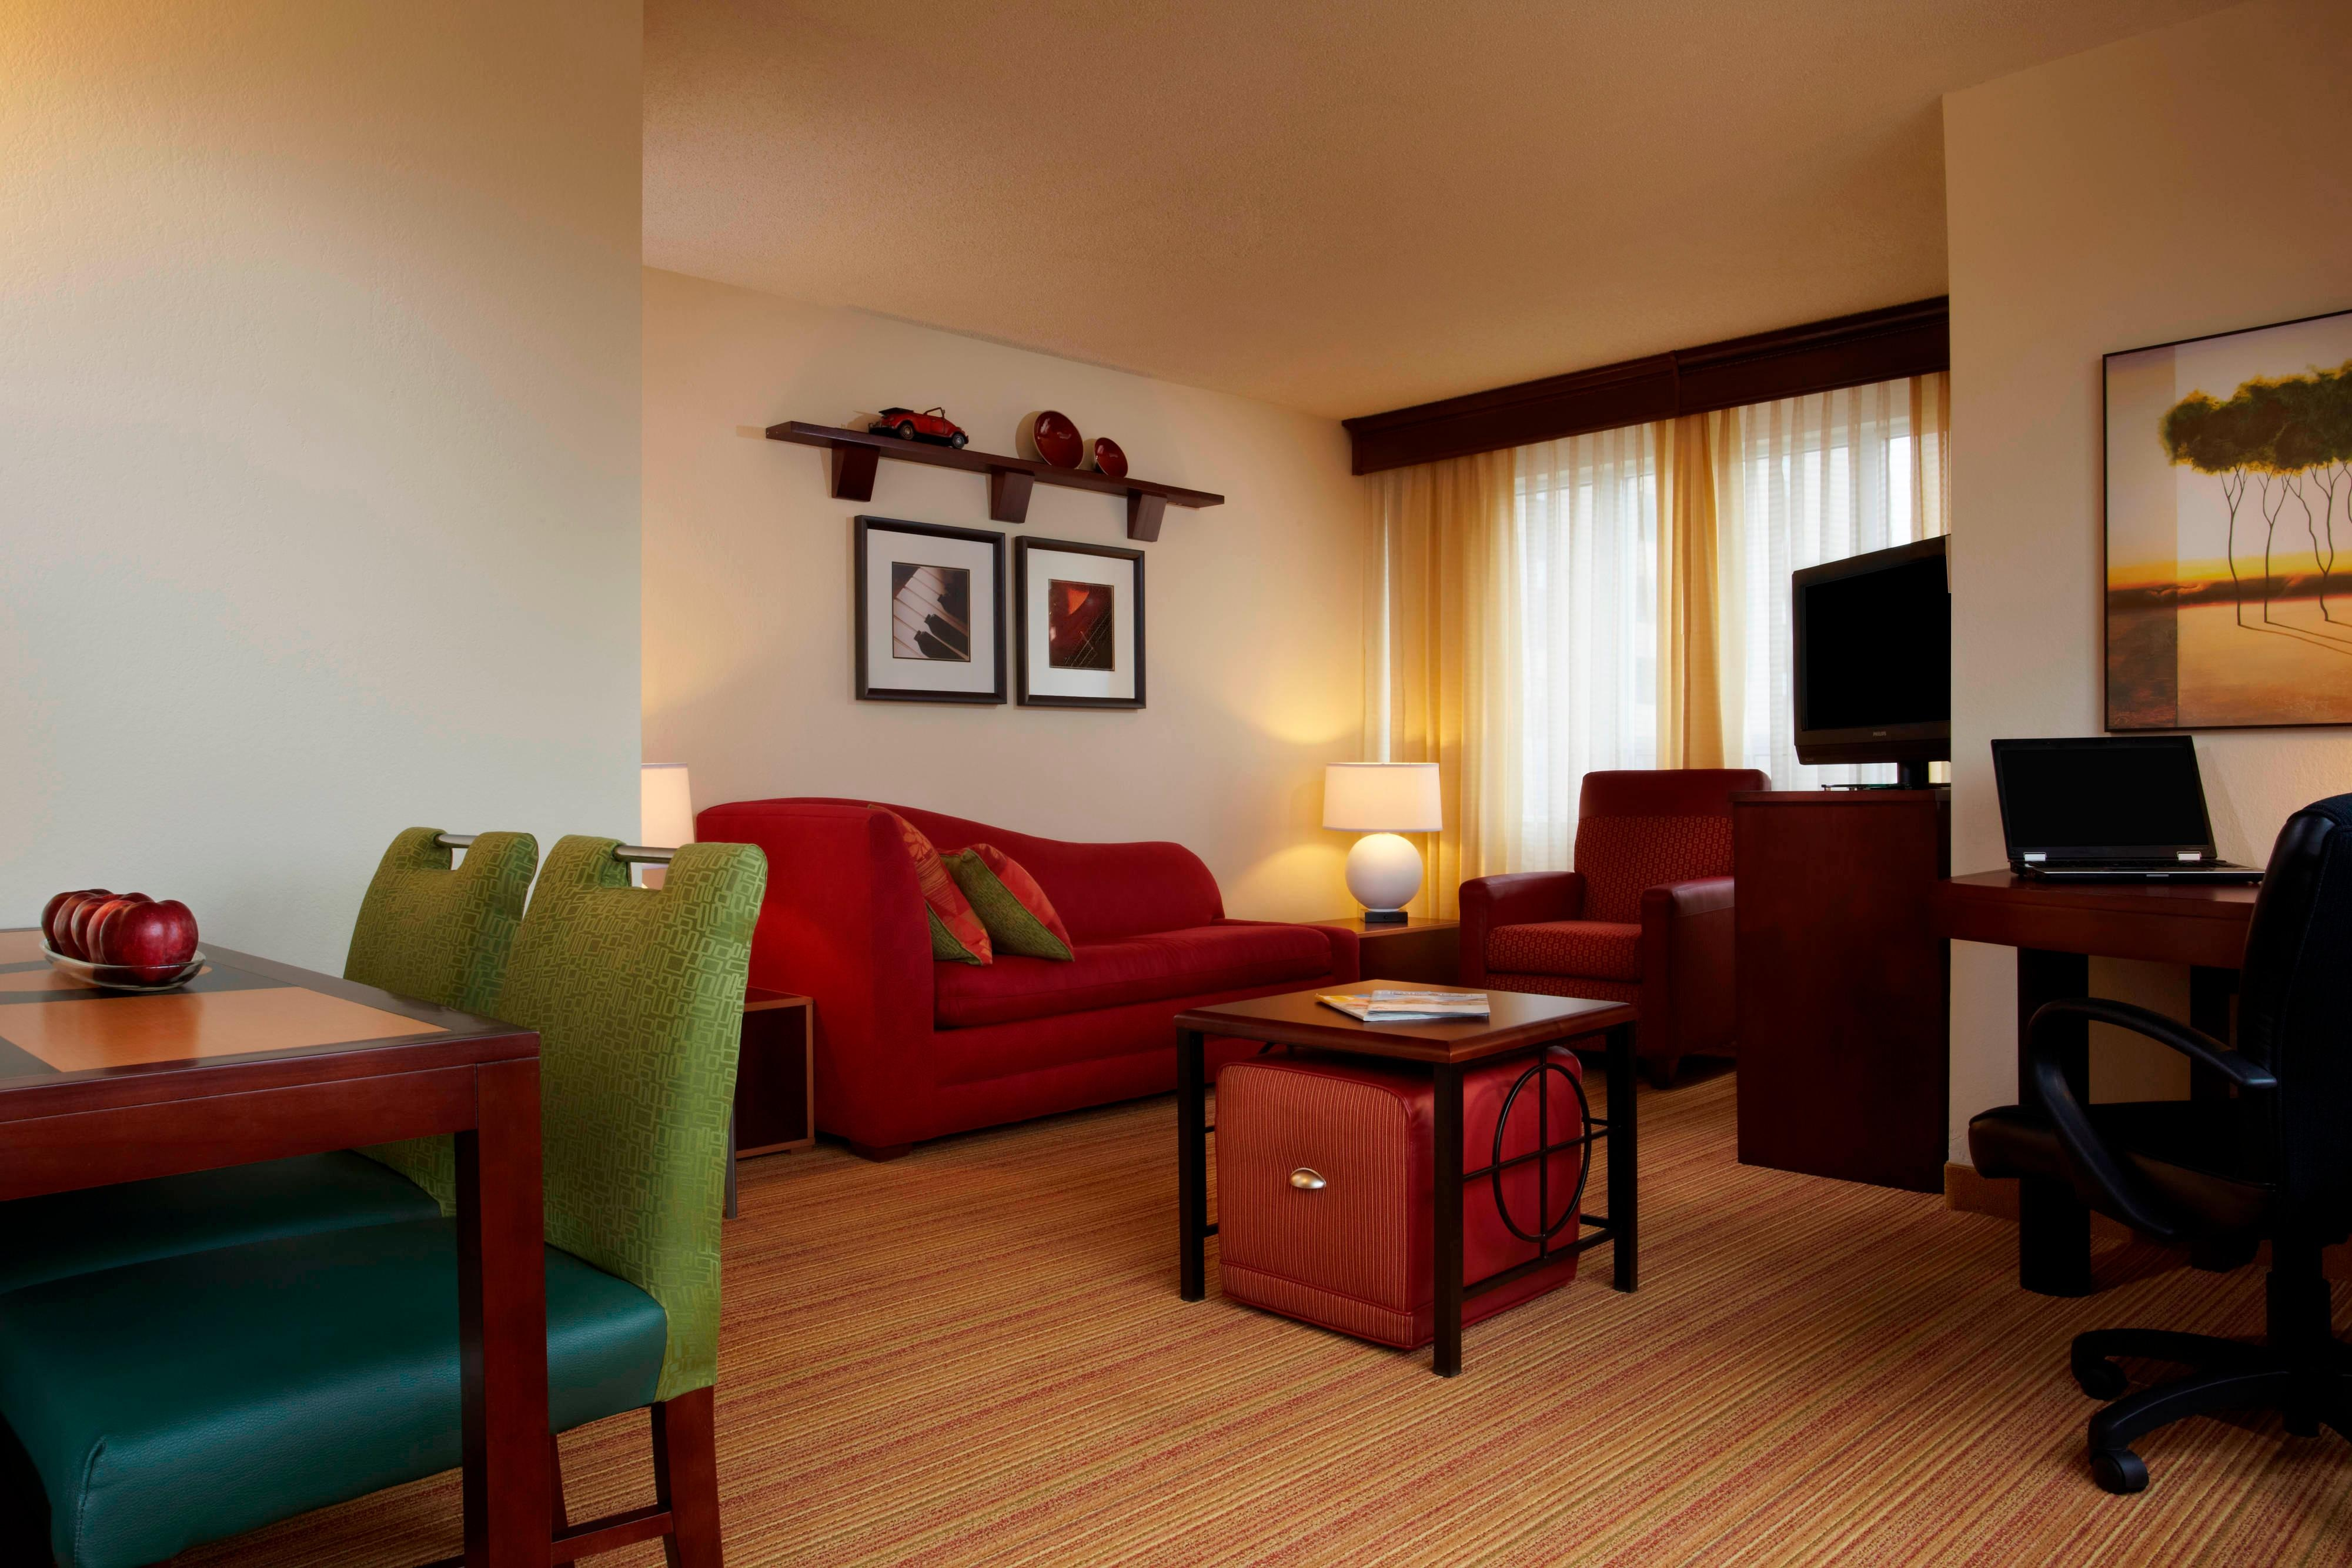 Extended stay london ontario hotel residence inn london - London hotels with 2 bedroom suites ...